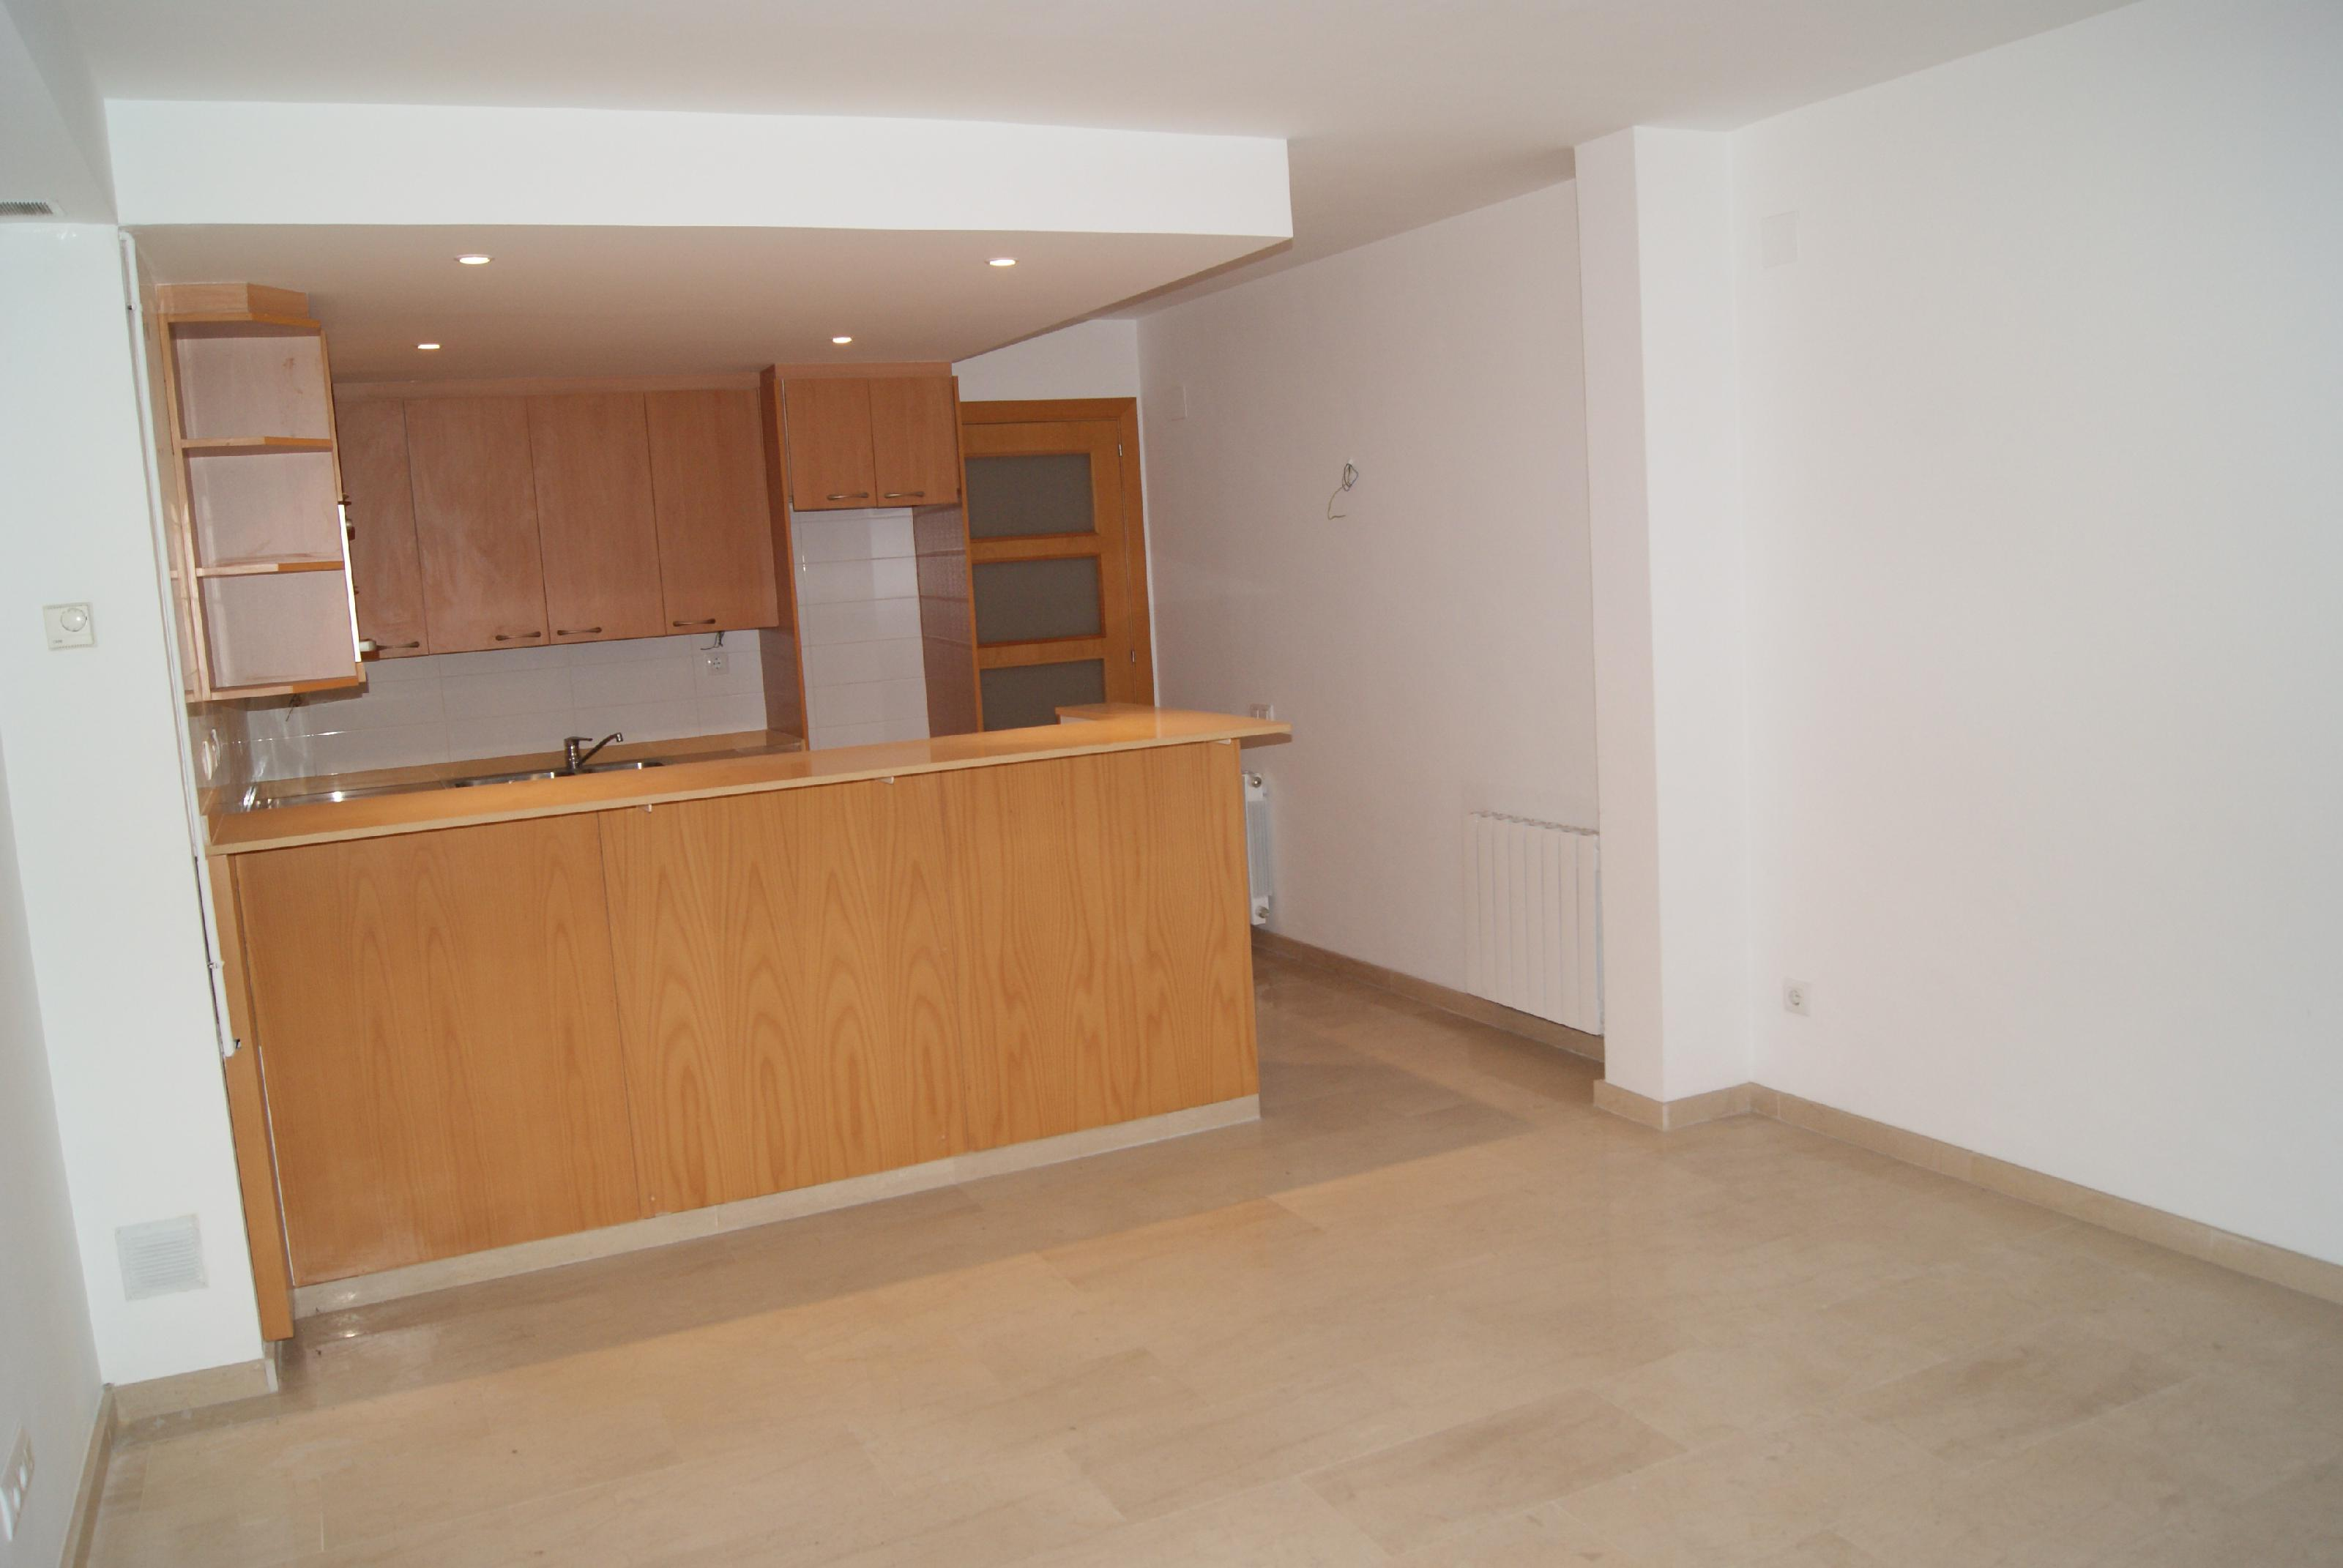 235220 Duplex for sale in Sants-Montjuïc, La Marina de Port 6